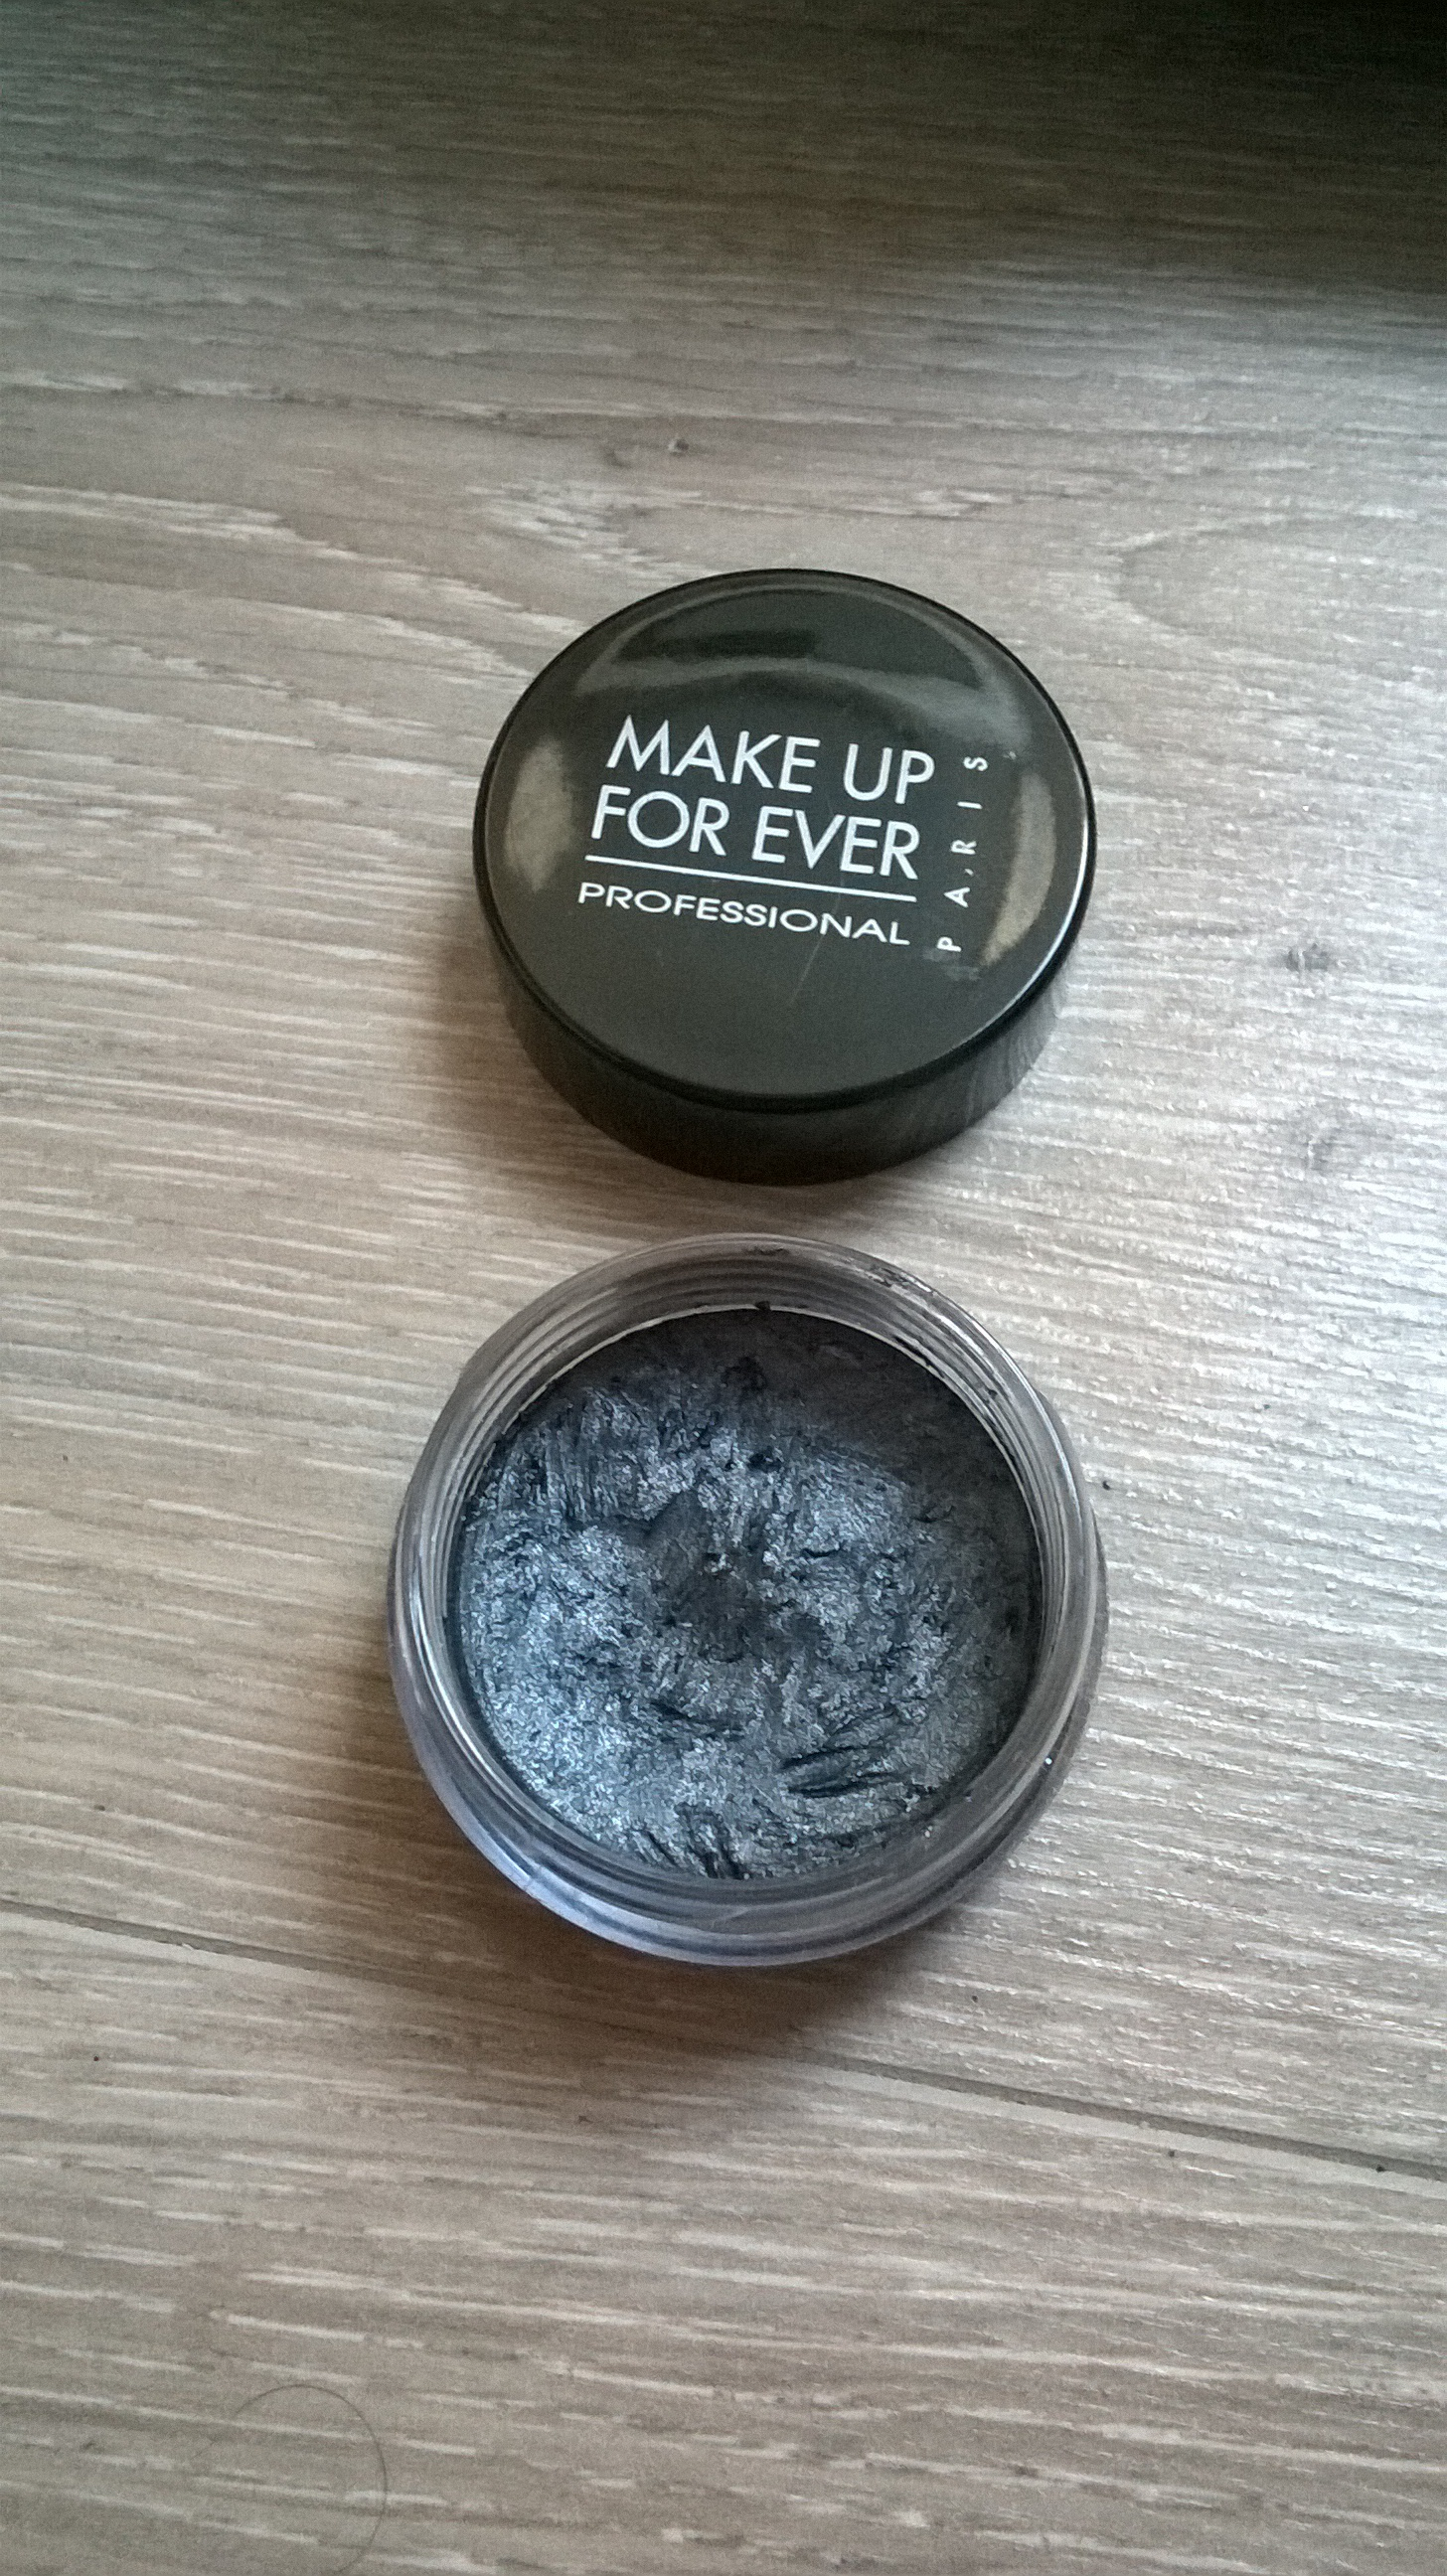 WP_20141014_065.jpg de Aqua Cream de Make Up For Ever